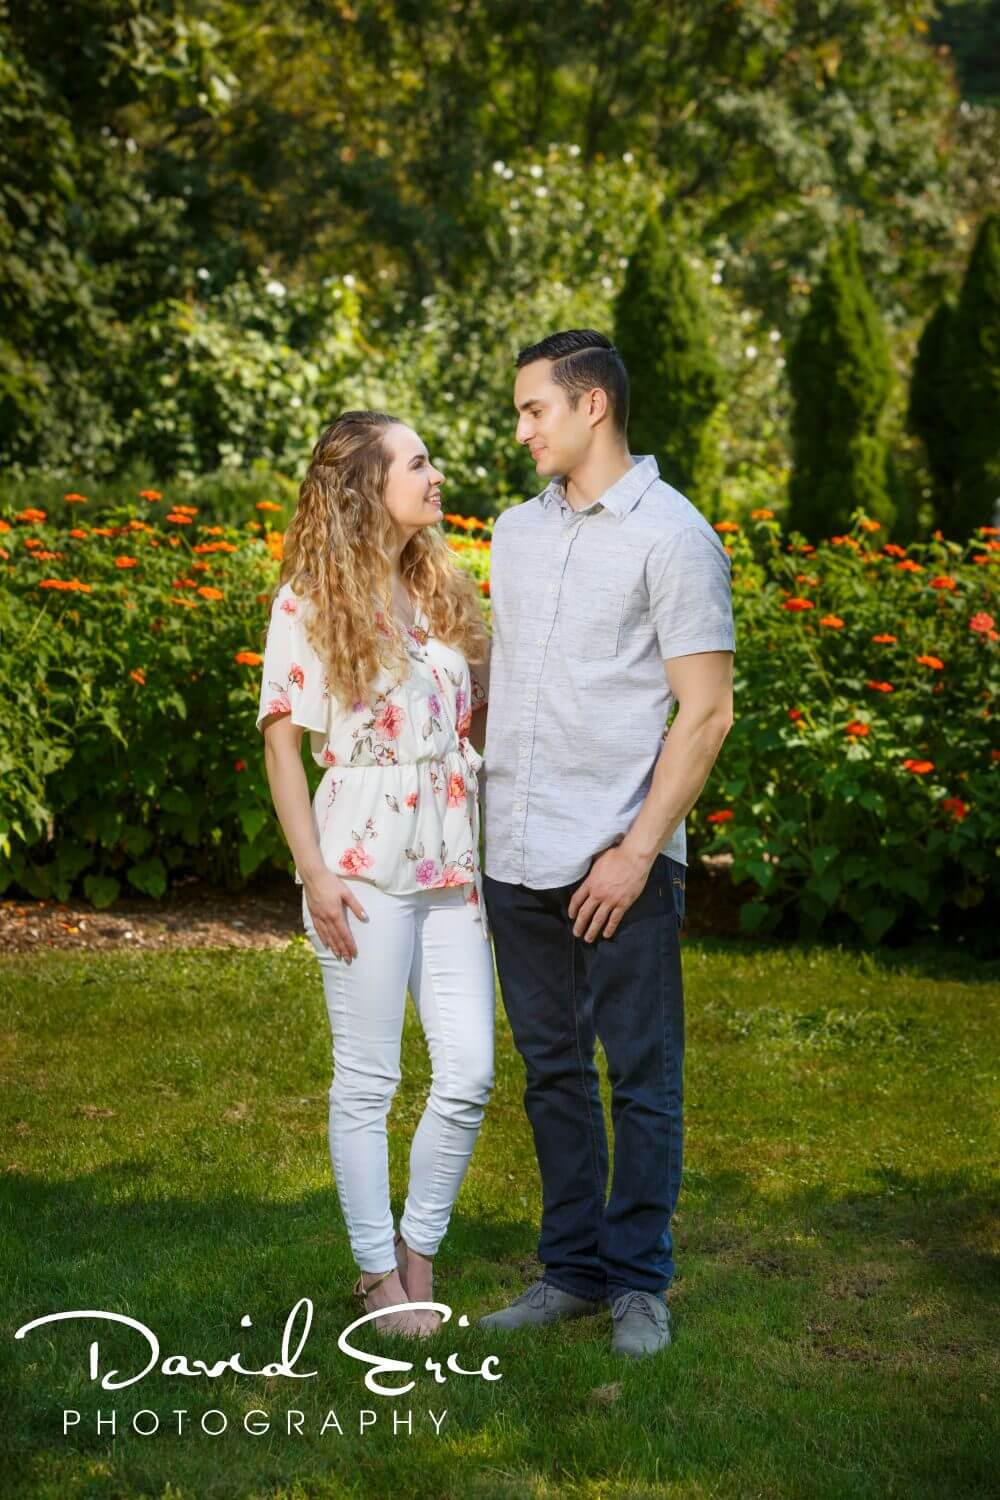 Engagement Session at the New Jersey Botanical Gardens